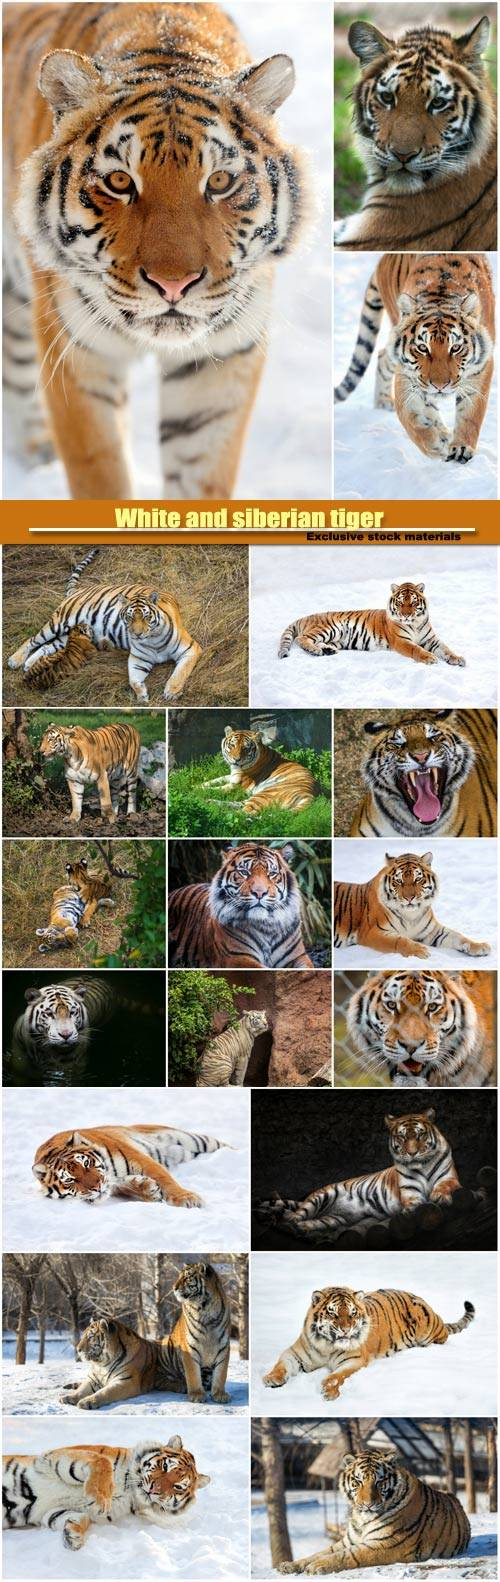 White and siberian tiger